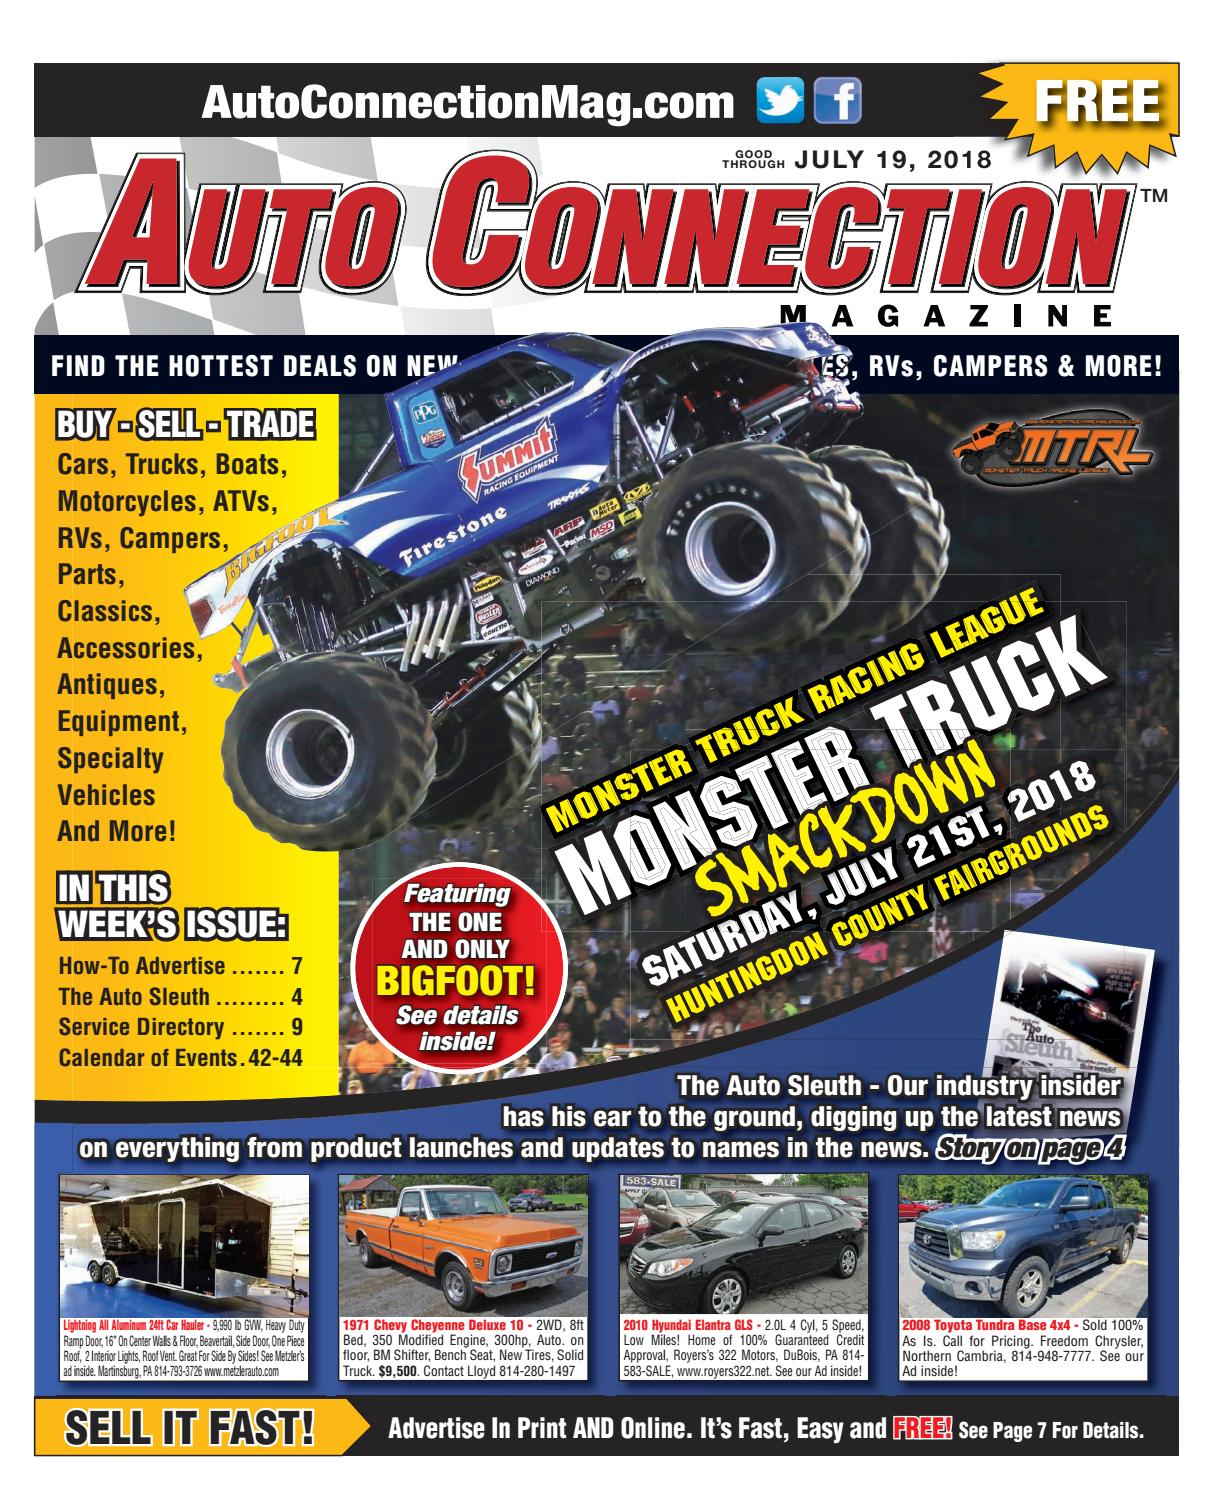 07-19-18 Auto Connection Magazine by Auto Connection Magazine - issuu b2229ee714f1